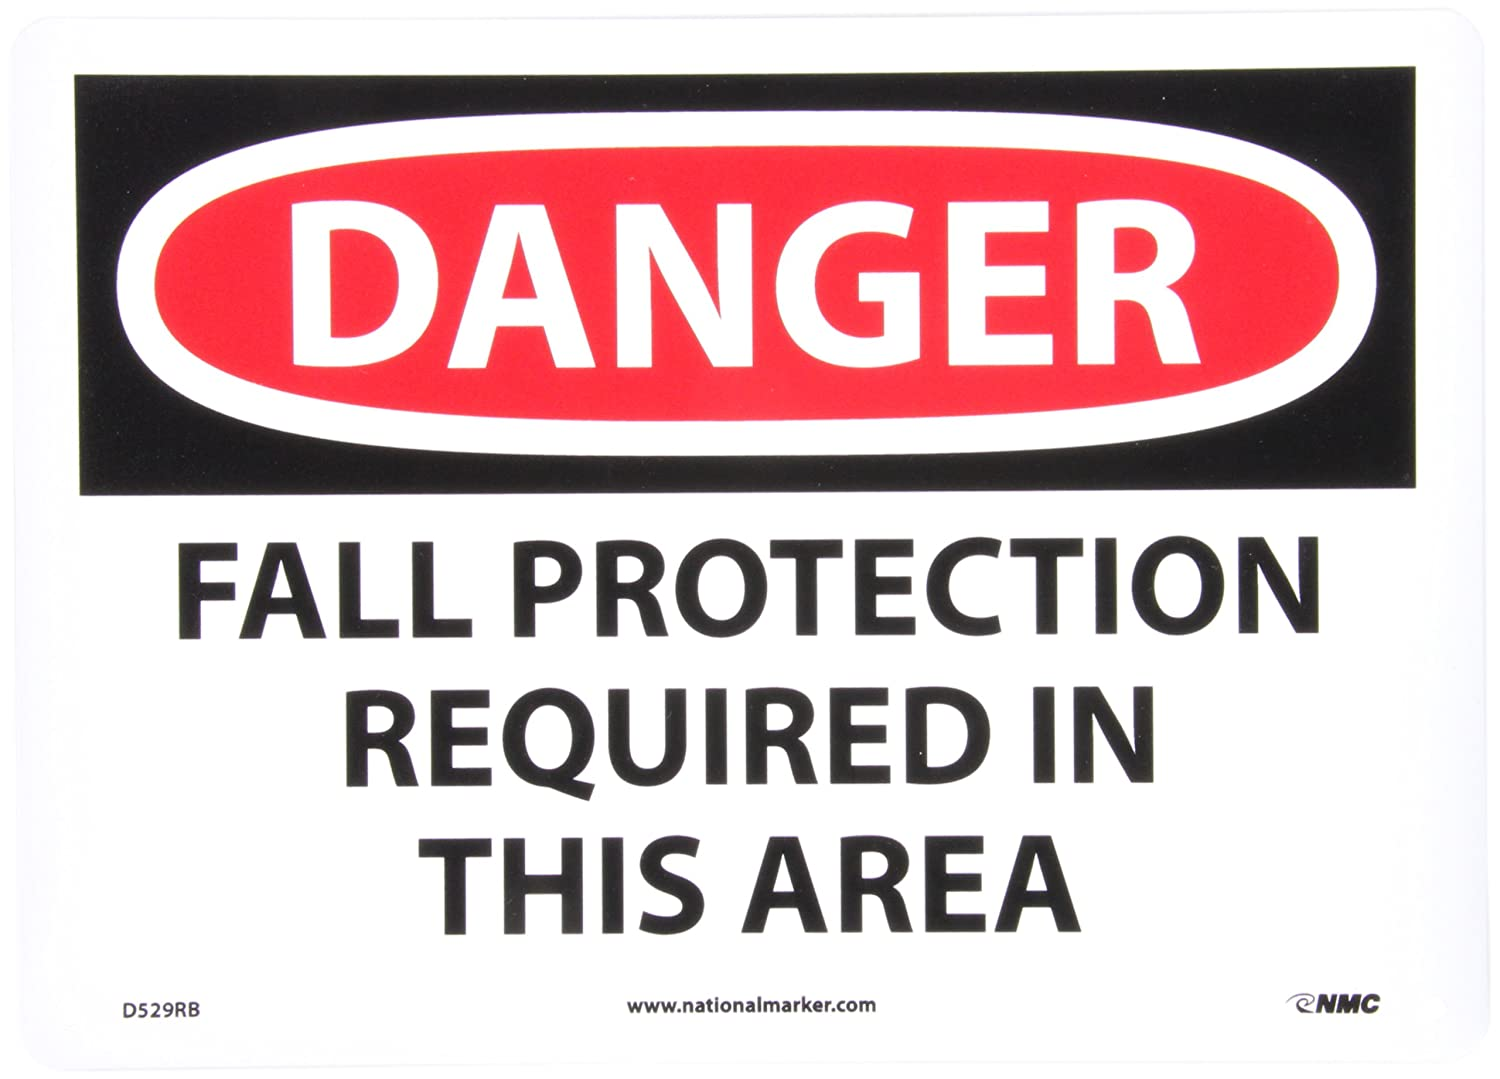 Black//Red on White 10 Length x 7 Height FALL PROTECTION REQUIRED IN THIS AREA NMC D529A OSHA Sign Legend DANGER Aluminum